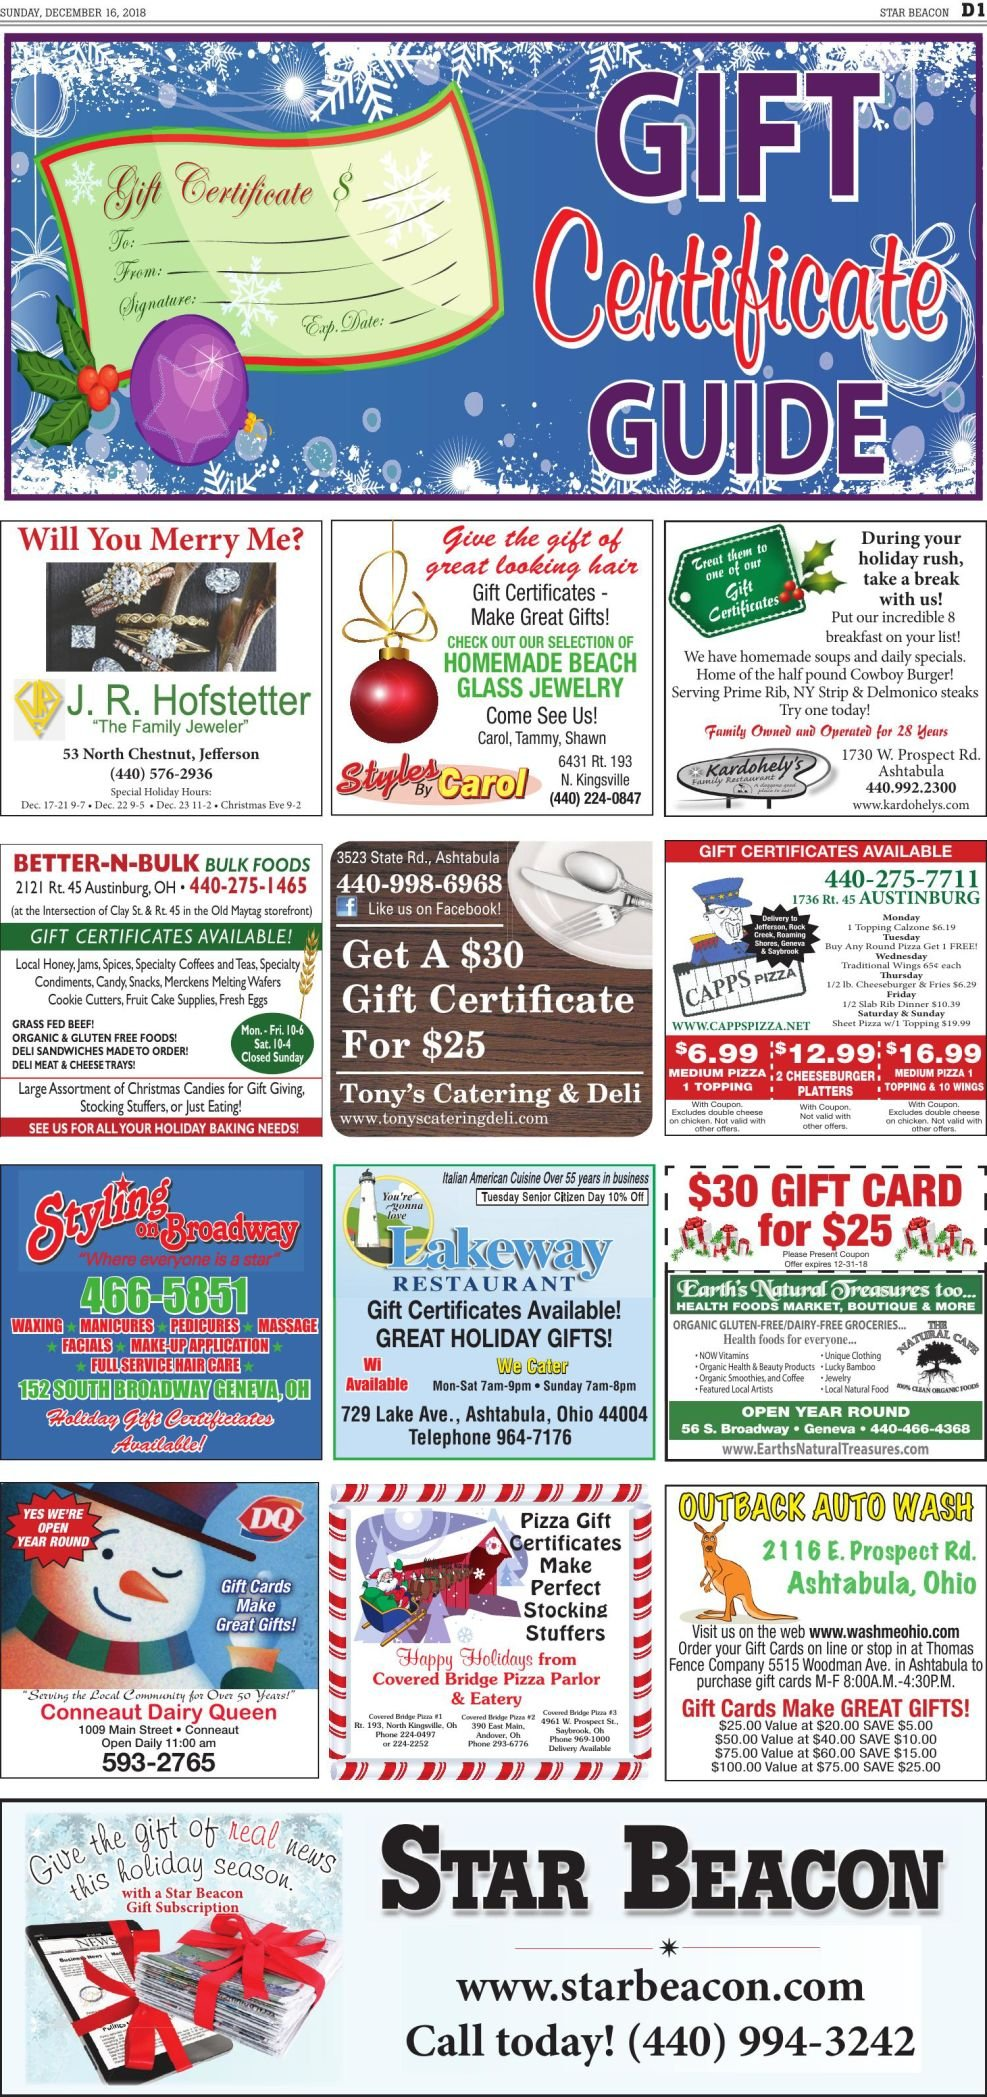 GIFT CERTIFICATES PAGE - Dec. 16 2018